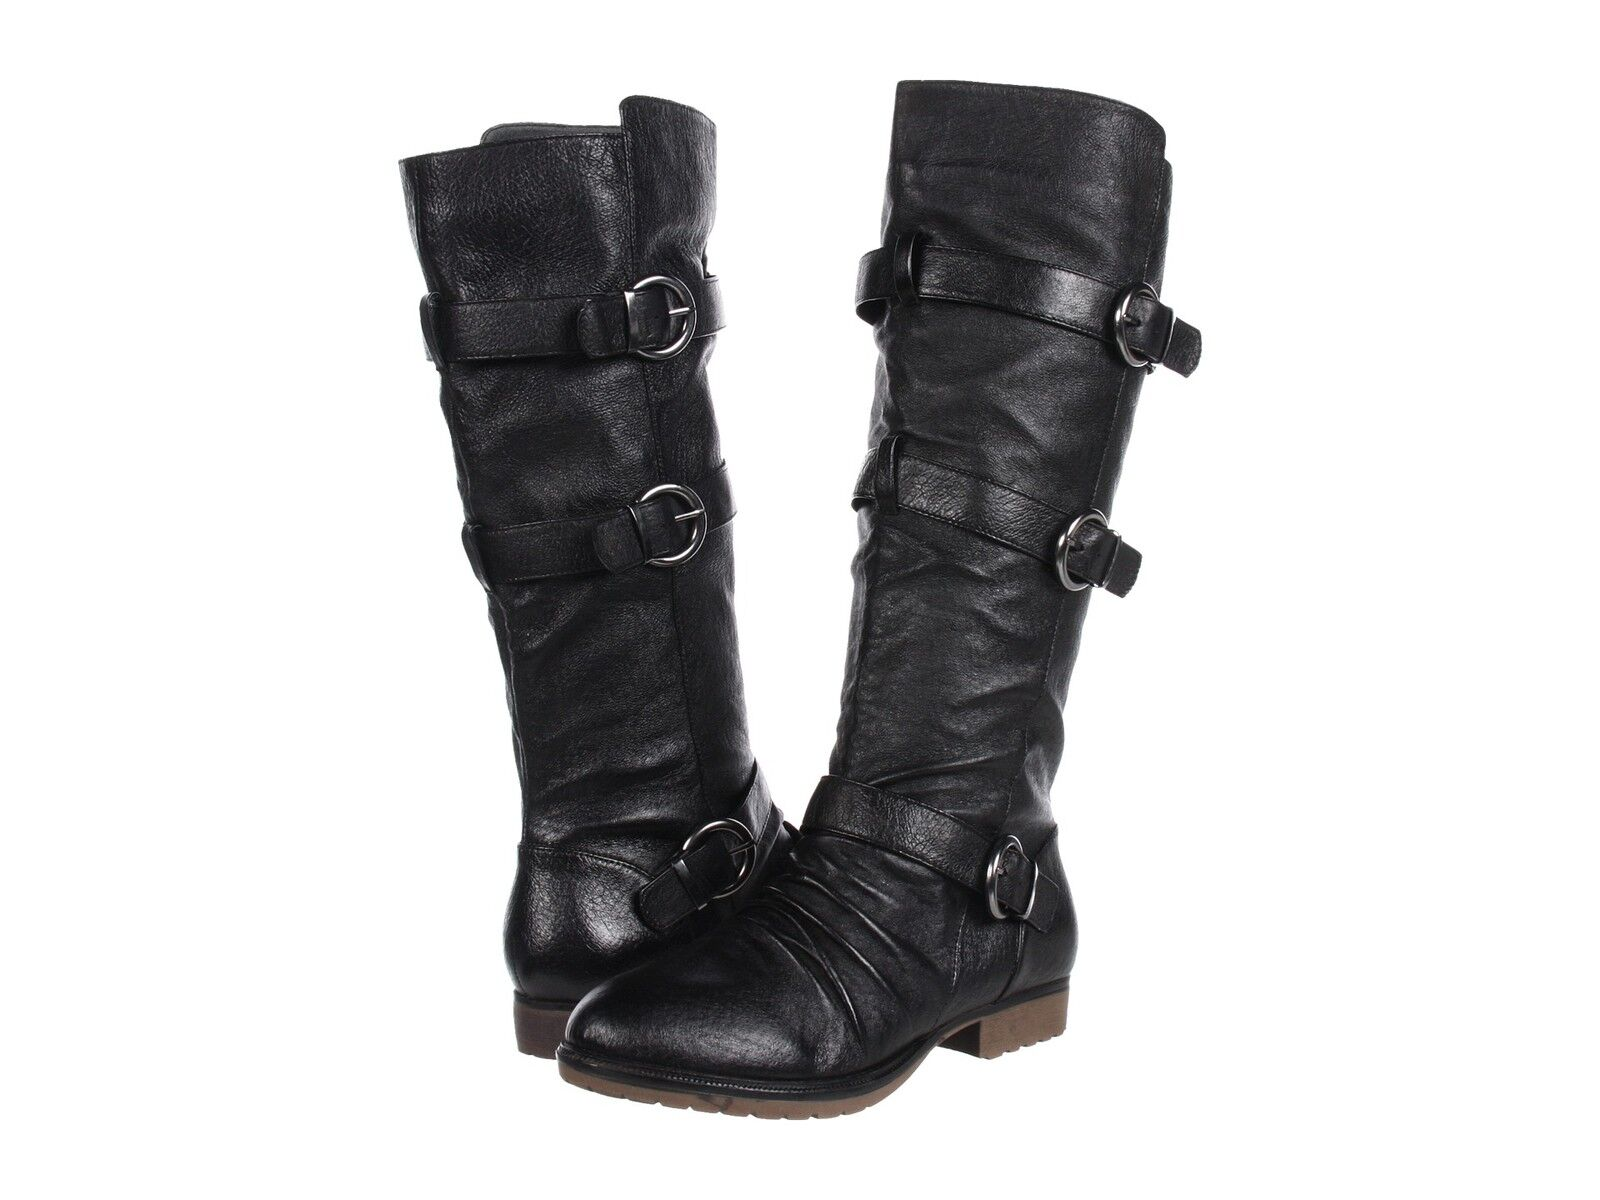 STEVE MADDEN Bennet BLACK Leather Tall Knee Boots Riding Shoes Flats Womens New